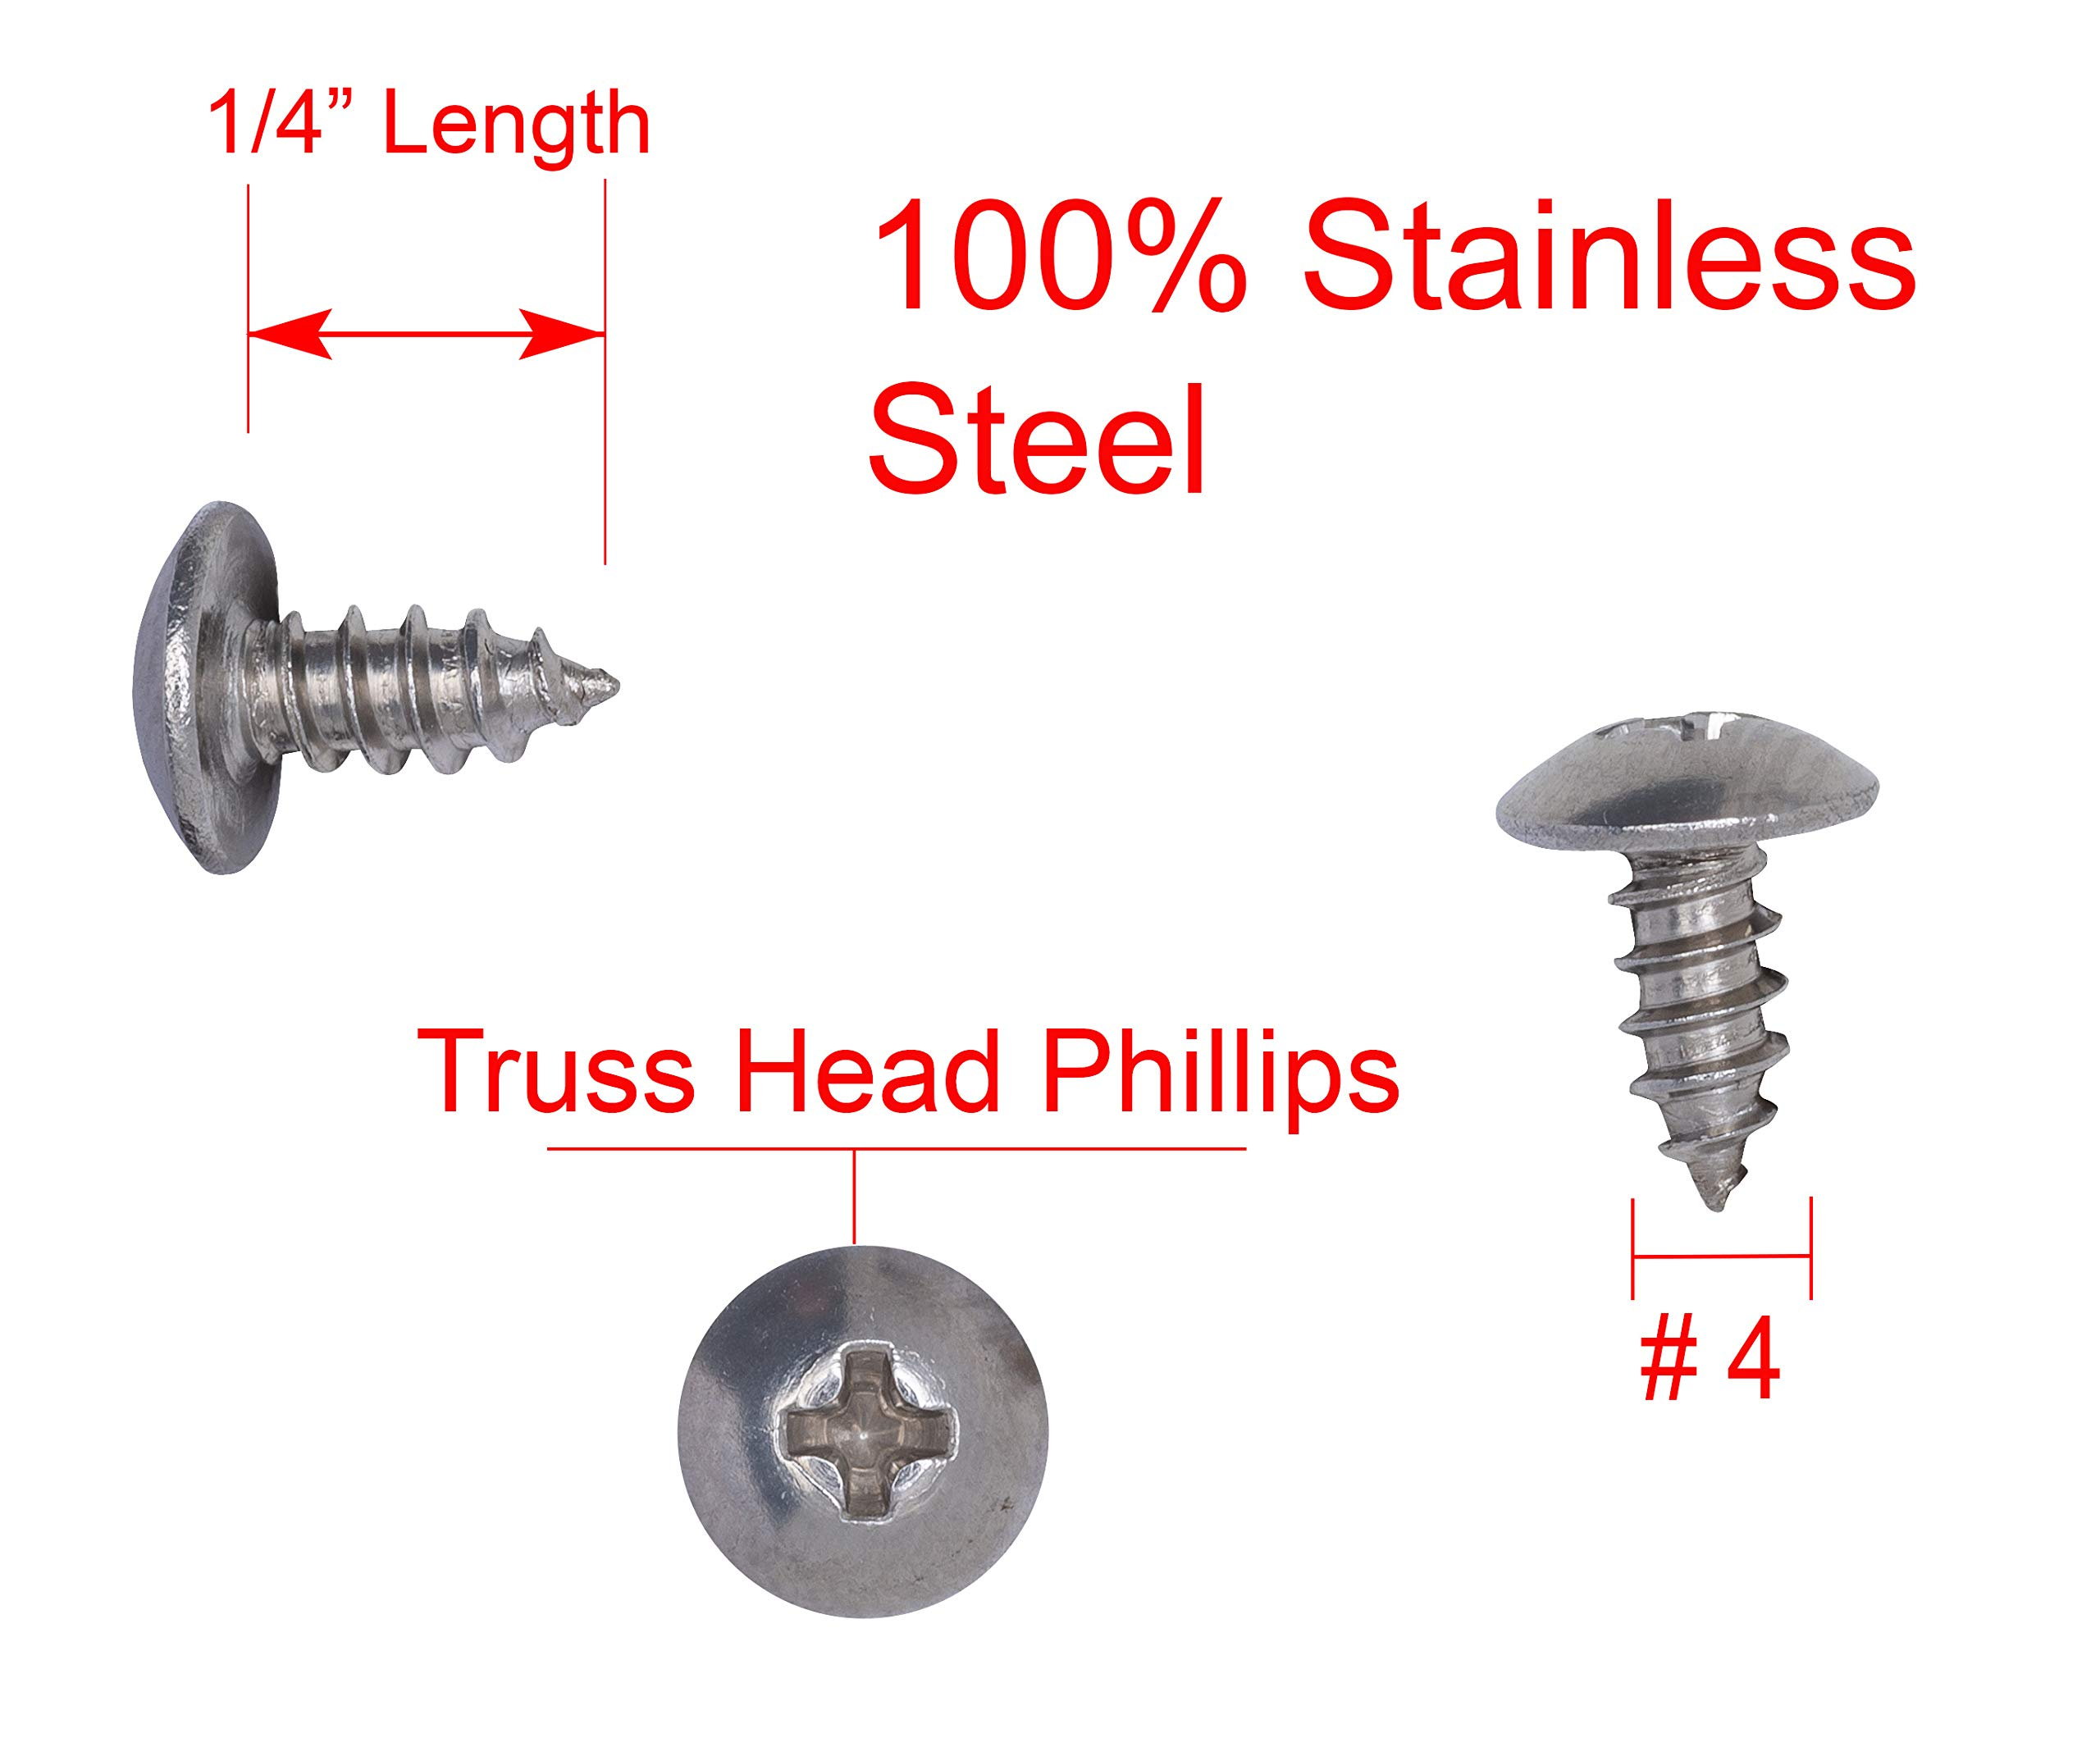 18-8 Stainless Steel Screws by Bolt Dropper 100pc #4 X 1//2 Stainless Truss Head Phillips Wood Screw 304